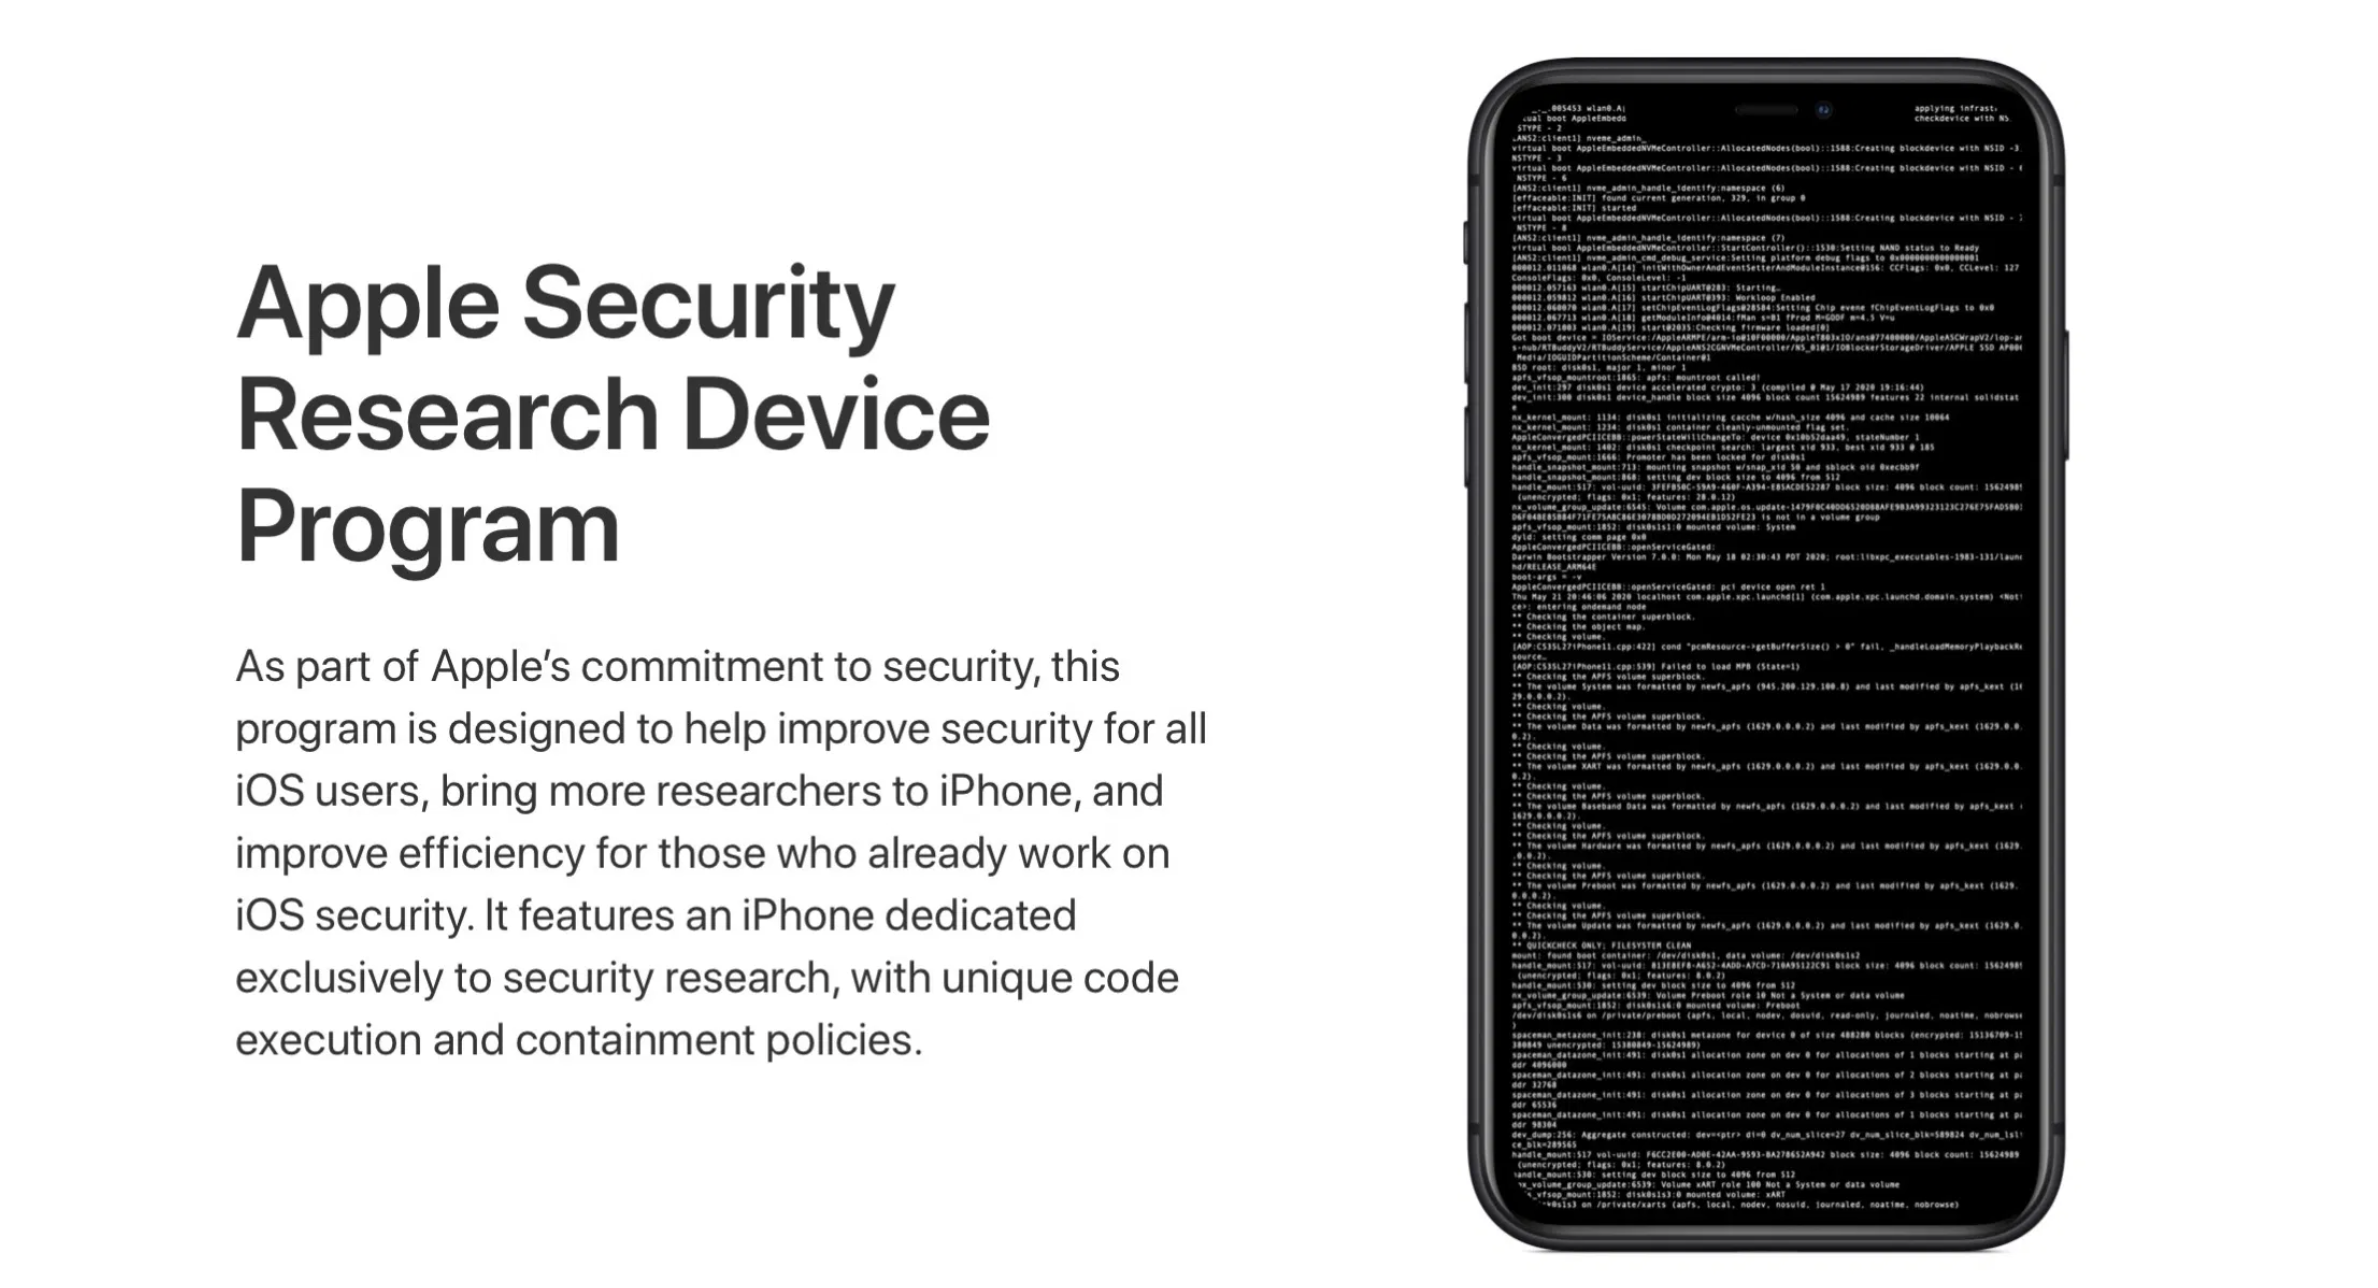 Apple starts shipping special iPhones as Part of Security Research Device Program